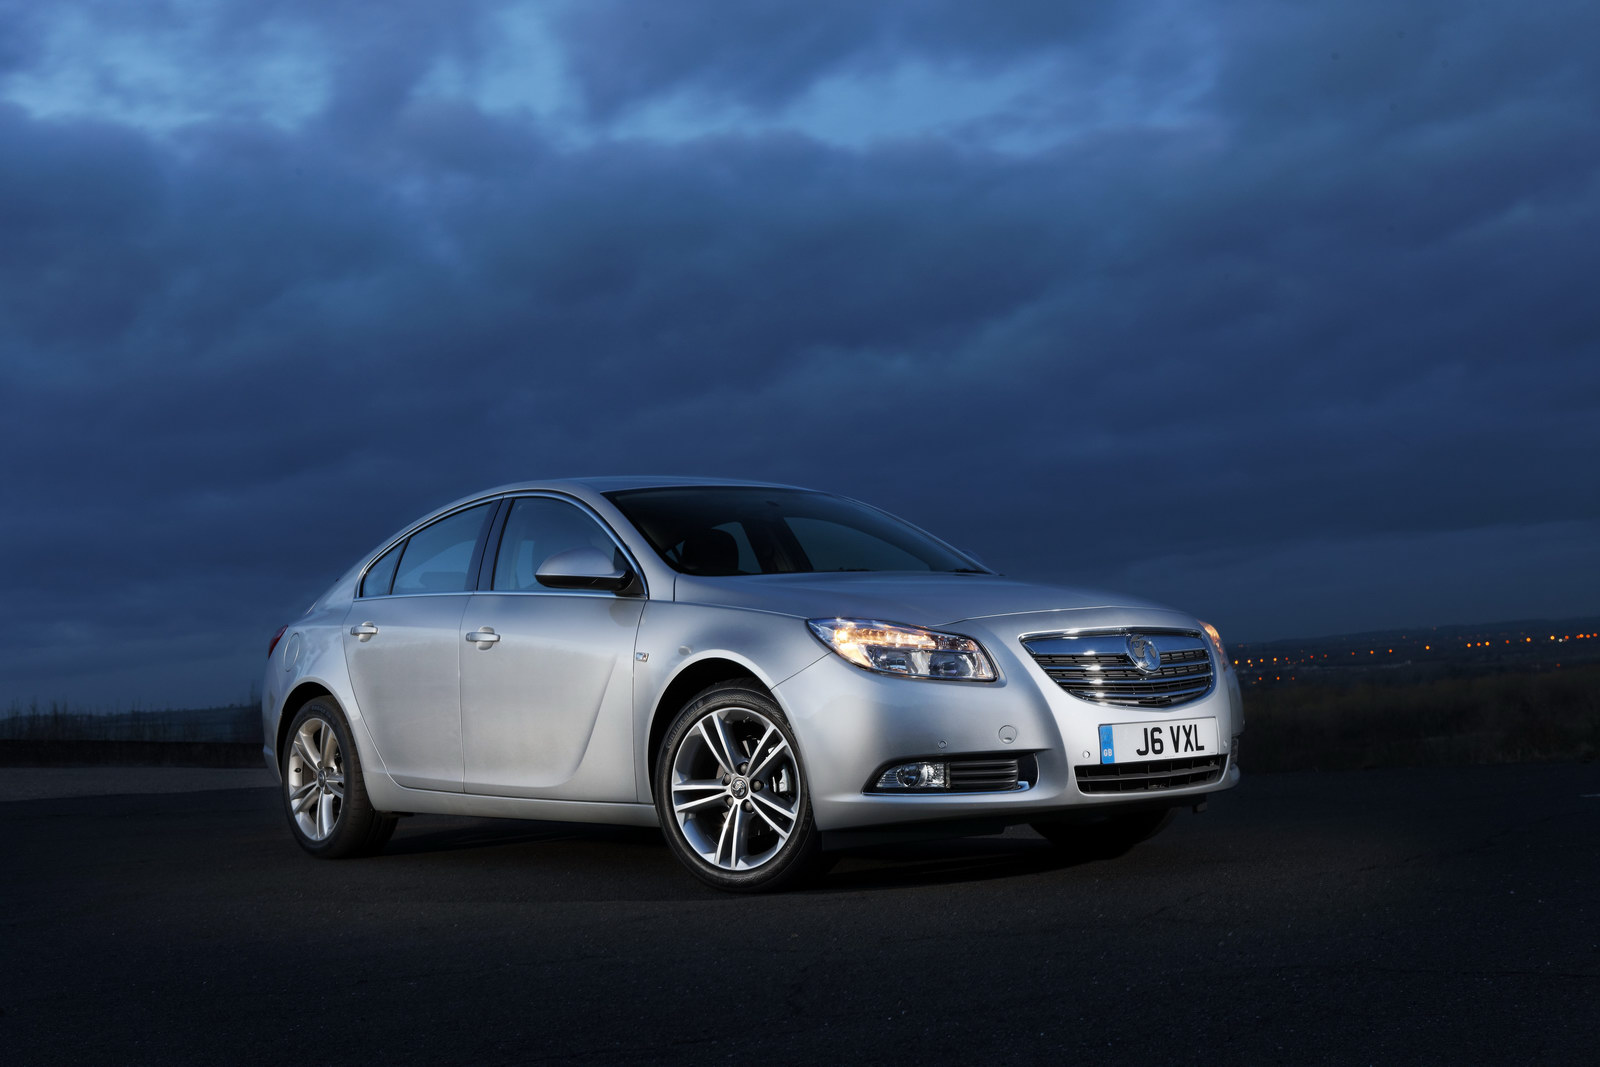 vauxhall insignia biturbo introduces 195 hp diesel engine autoevolution. Black Bedroom Furniture Sets. Home Design Ideas